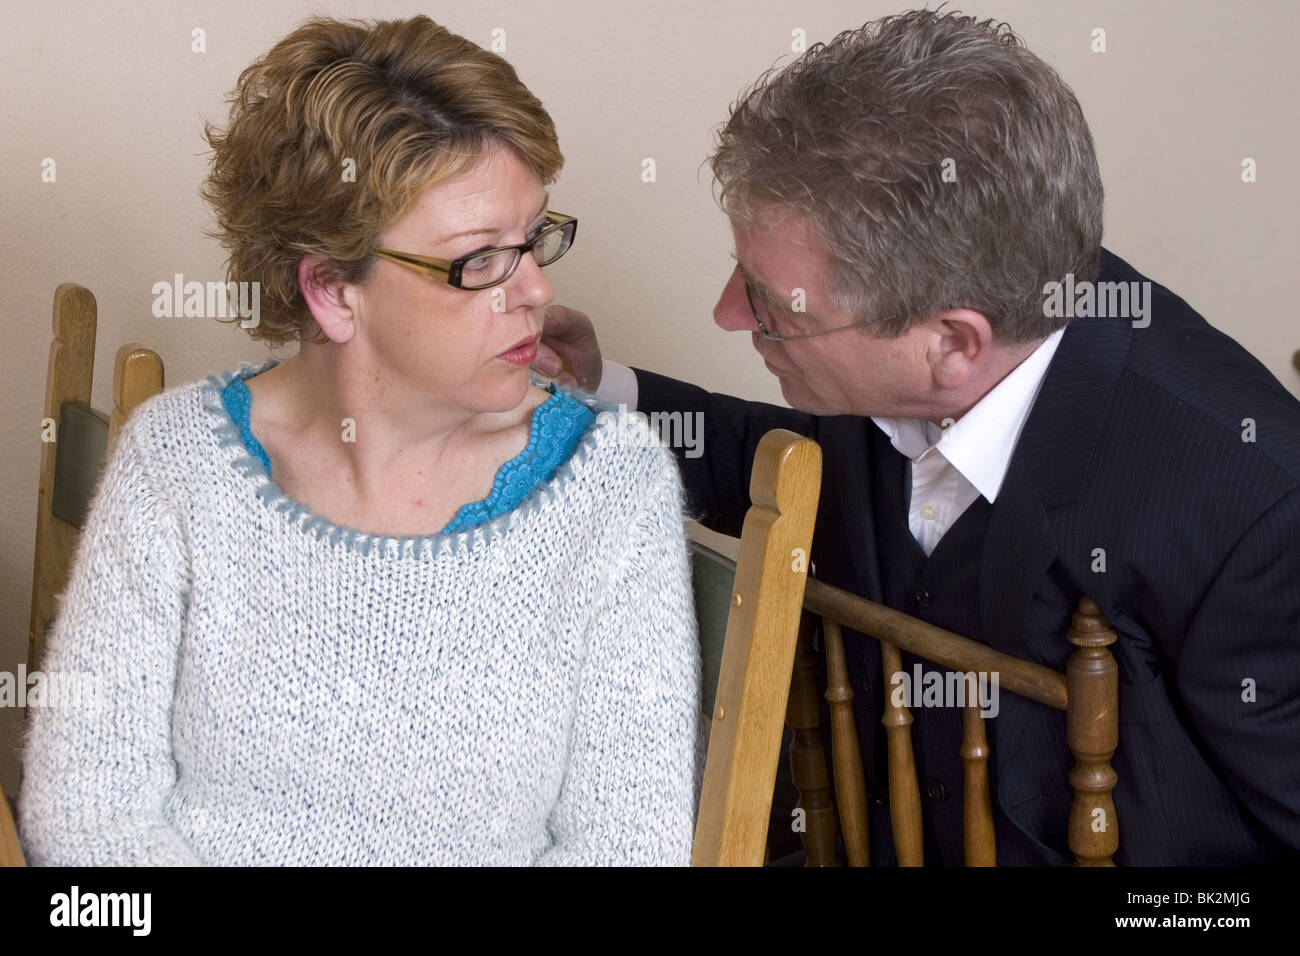 Adult couple serious conversation Stock Photo